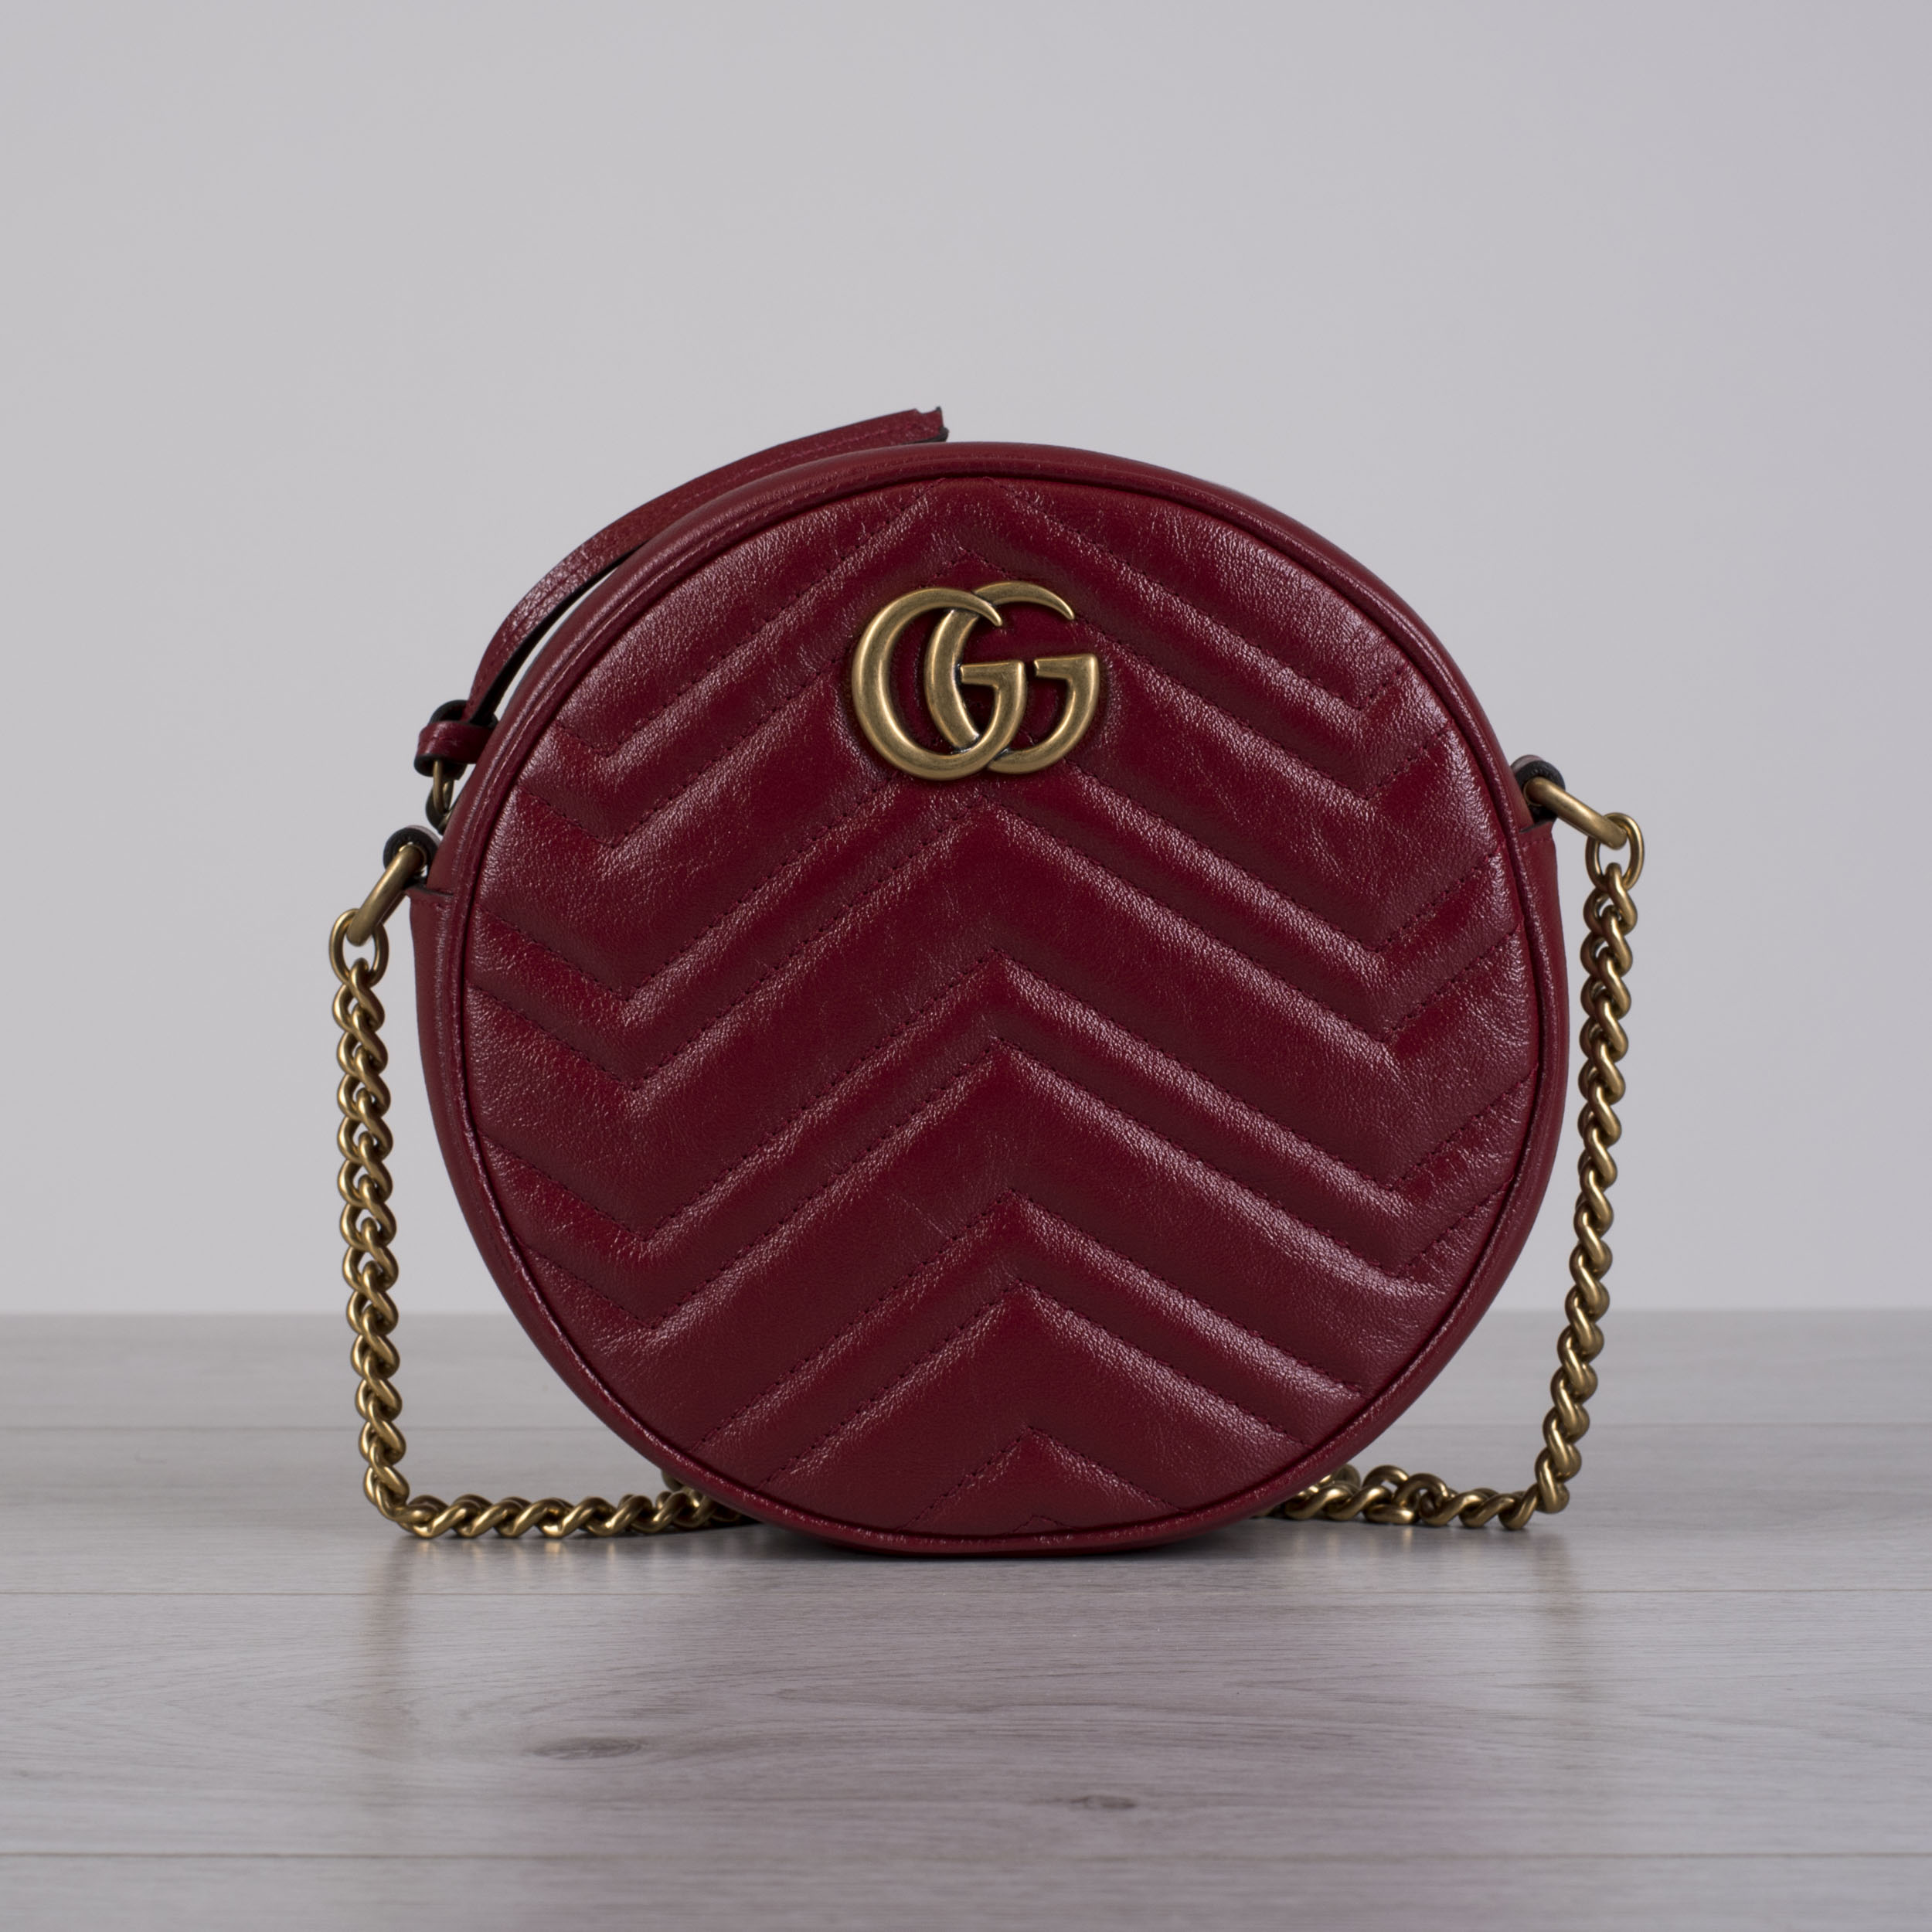 5489eefb90c Details about GUCCI 1290  GG Marmont Mini Round Shoulder Bag In Hibiscus  Red Leather